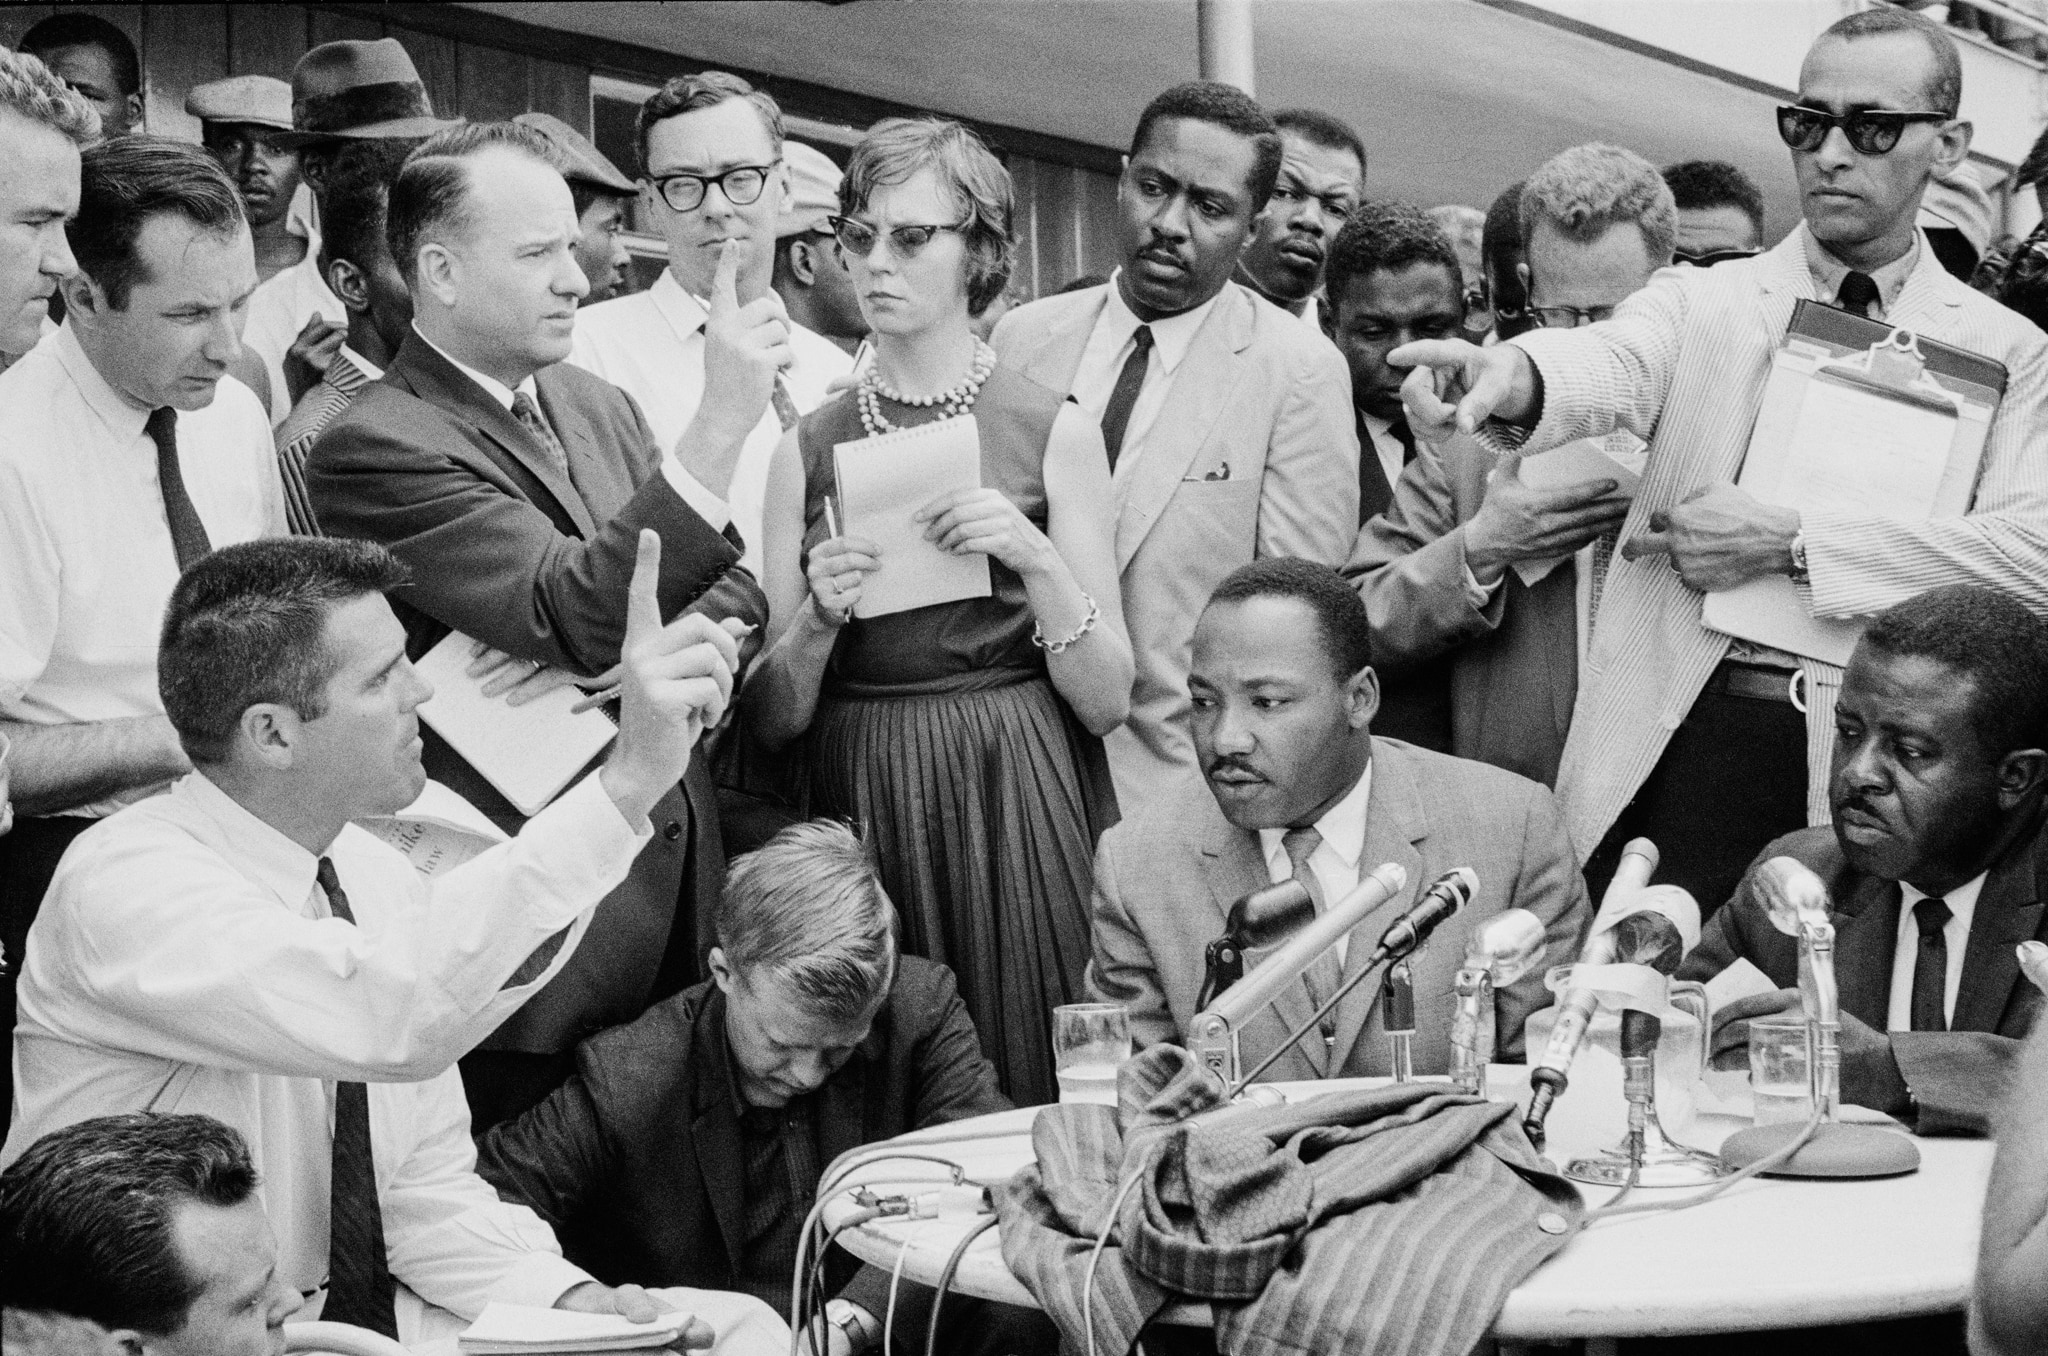 Martin Luther King Jr. seated at table, surrounded by people at press conference (© Ernst Haas/Hulton Archive/Getty Images)